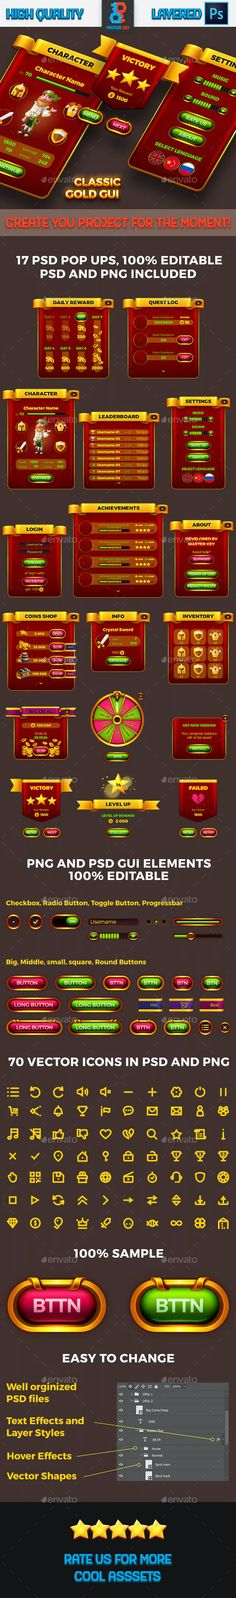 Classic Game Gold GUI by Master_Key | GraphicRiver Daily Rewards, Game Gui, Master Key, Coin Shop, Match 3, Retina Display, Level Up, Arcade, Video Game